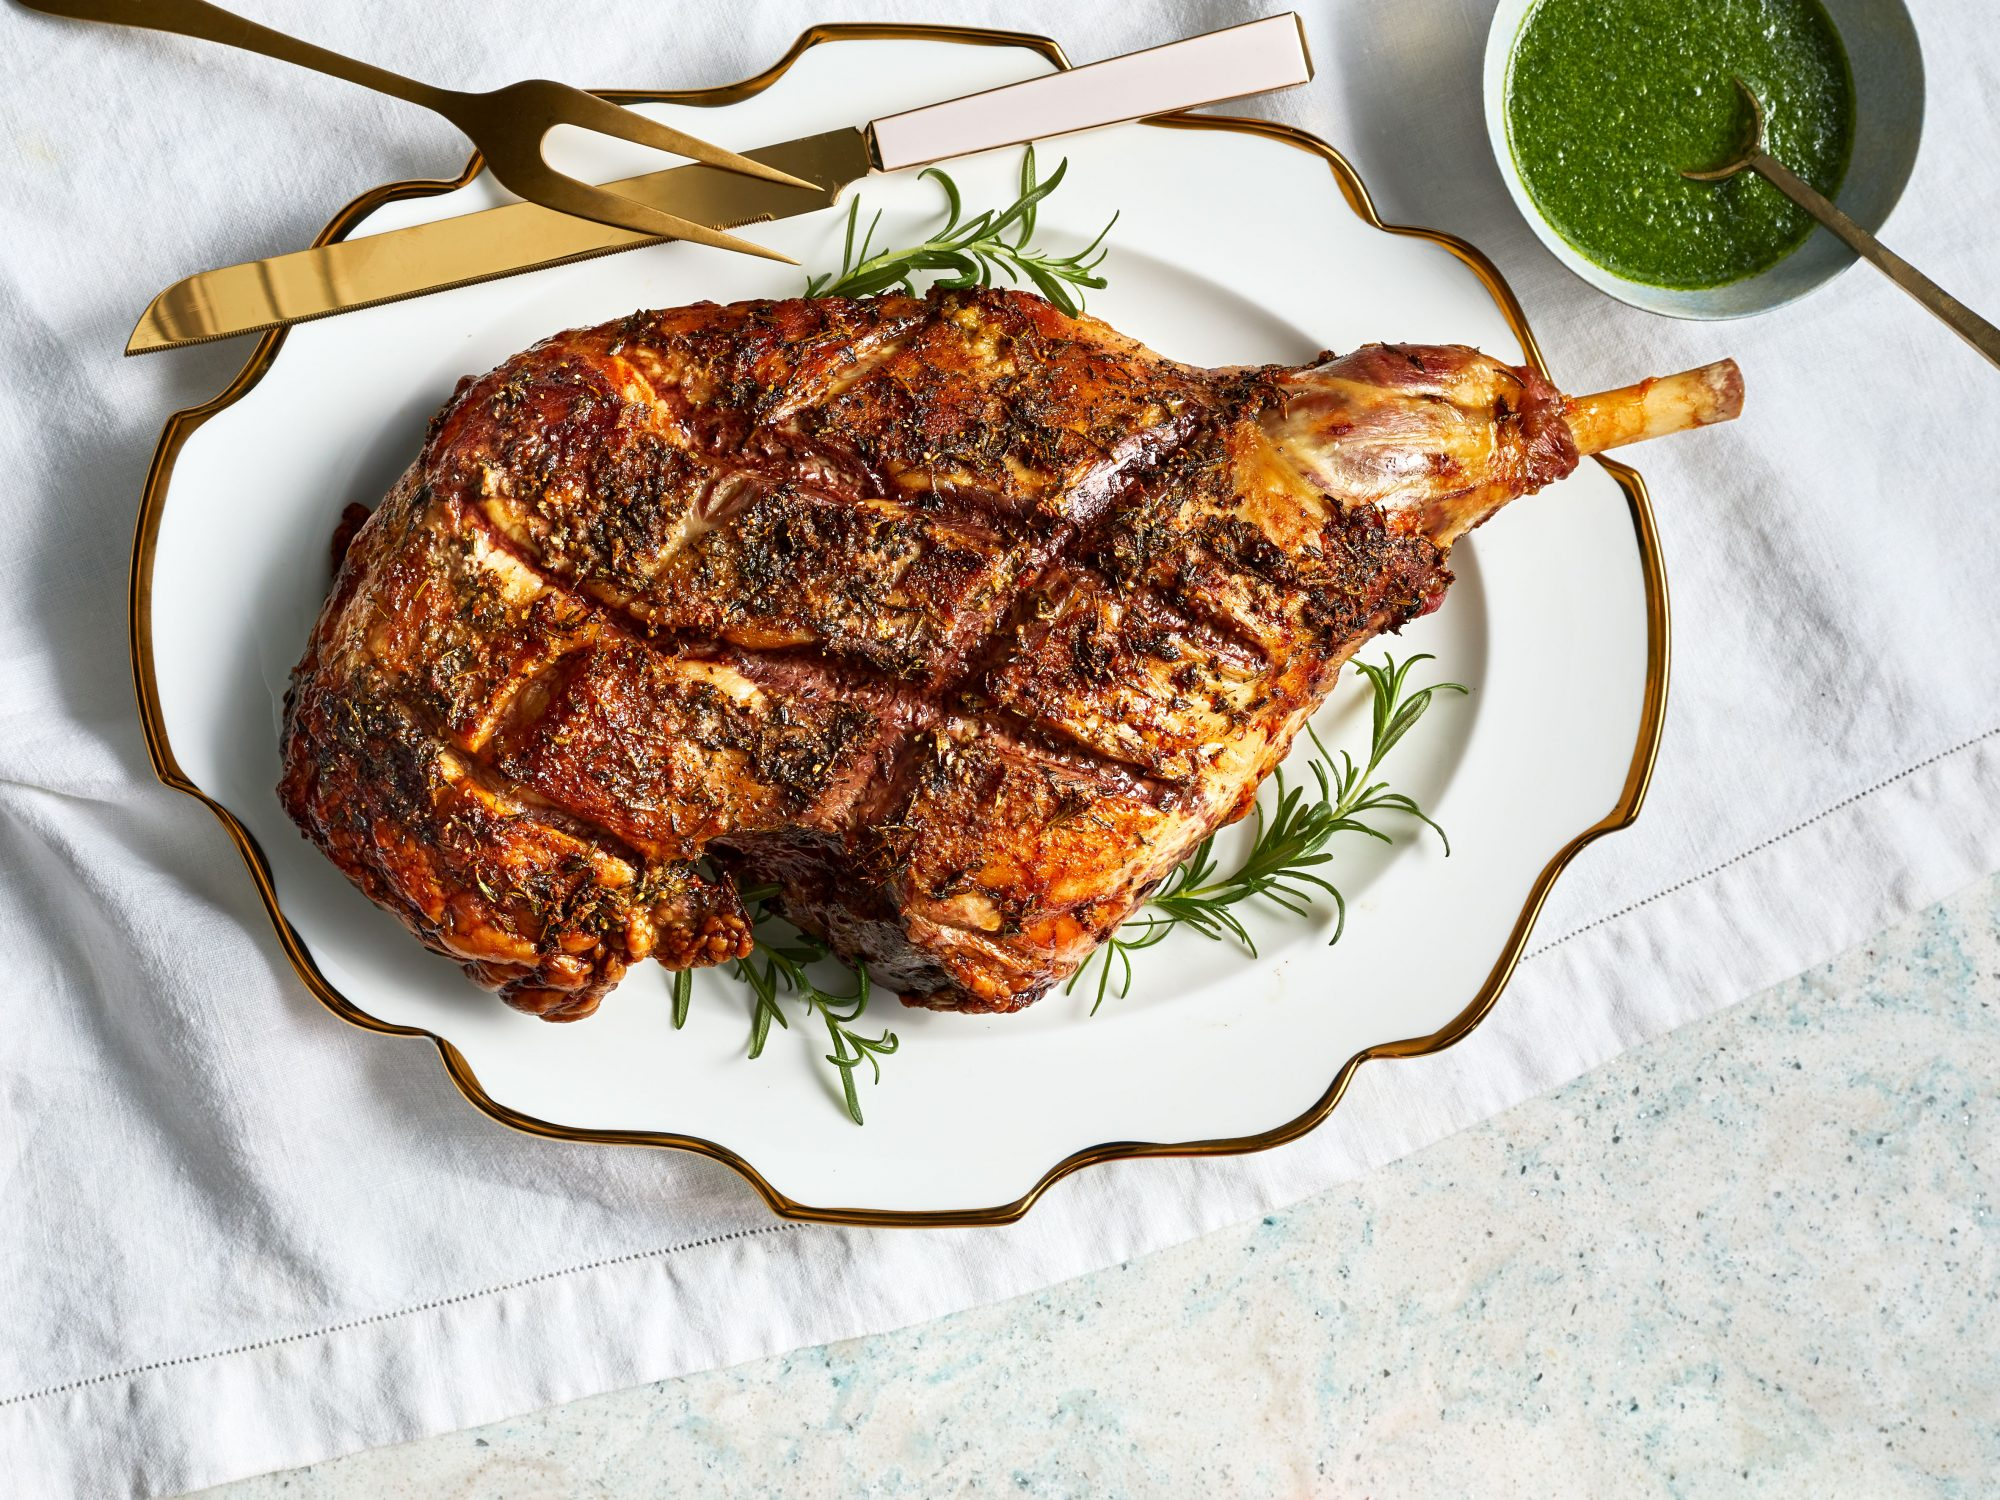 Herb-Crusted Roasted Leg of Lamb